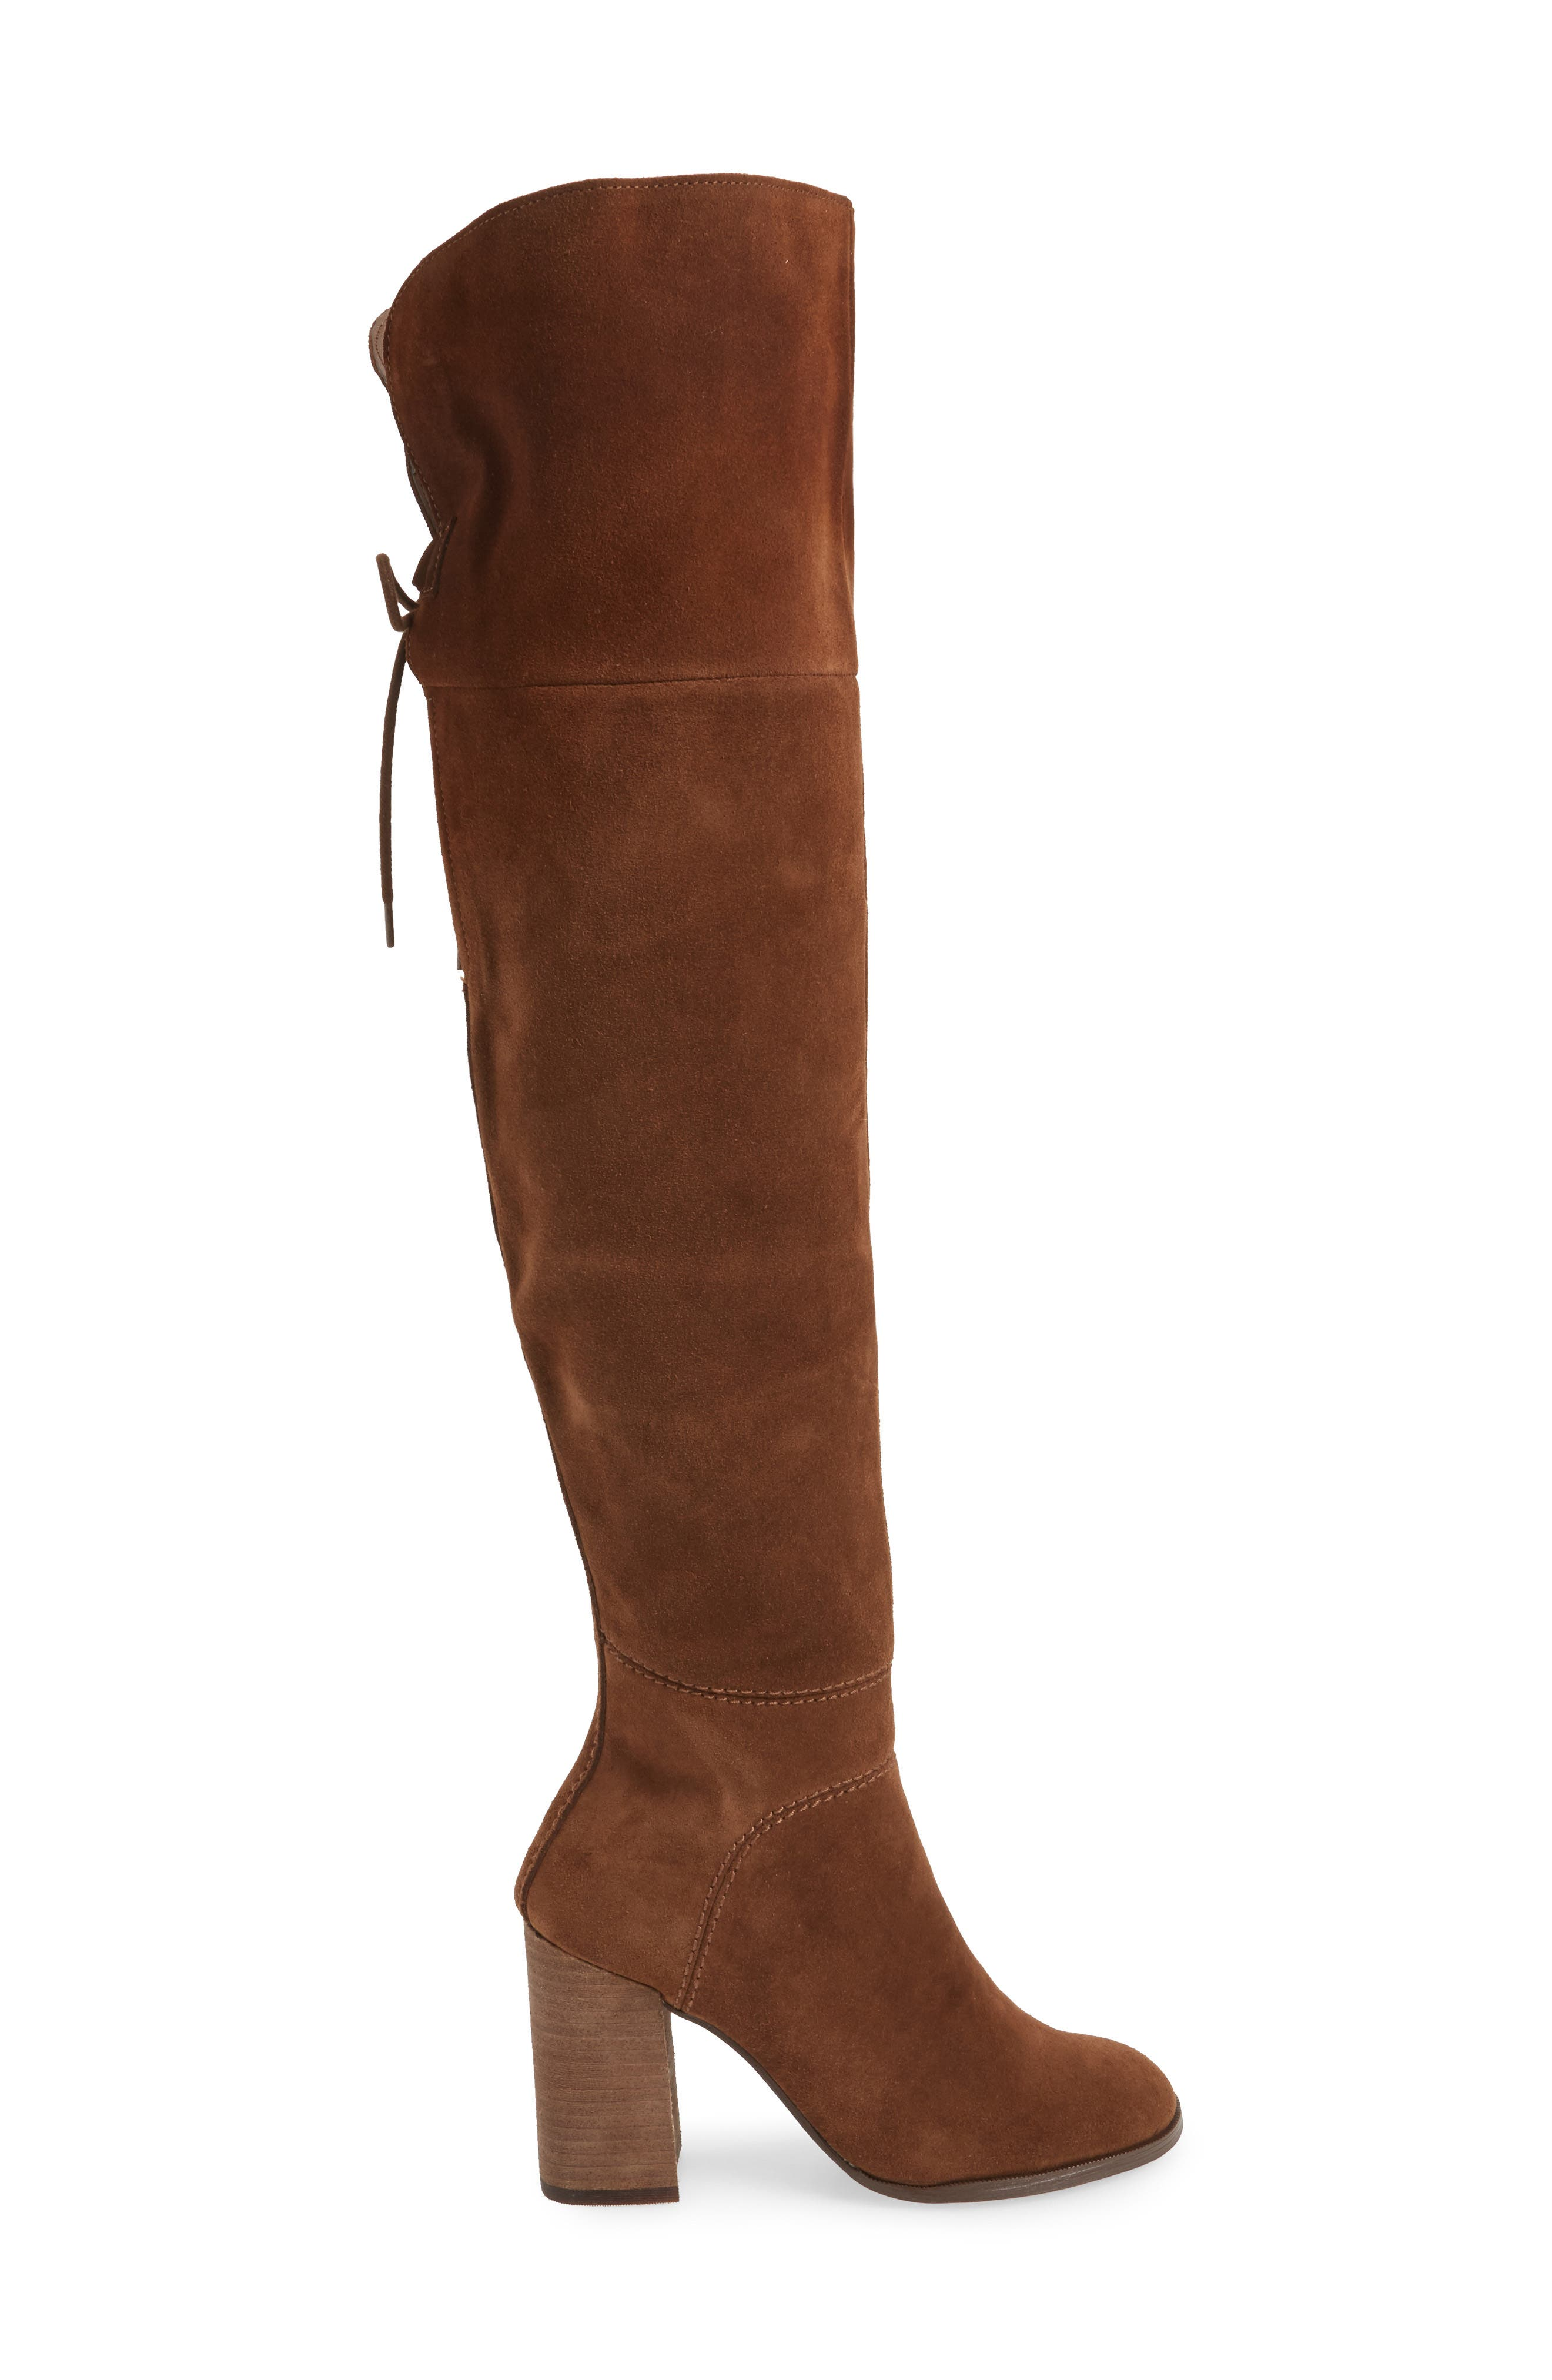 Novela Cuffable Over the Knee Boot,                             Alternate thumbnail 6, color,